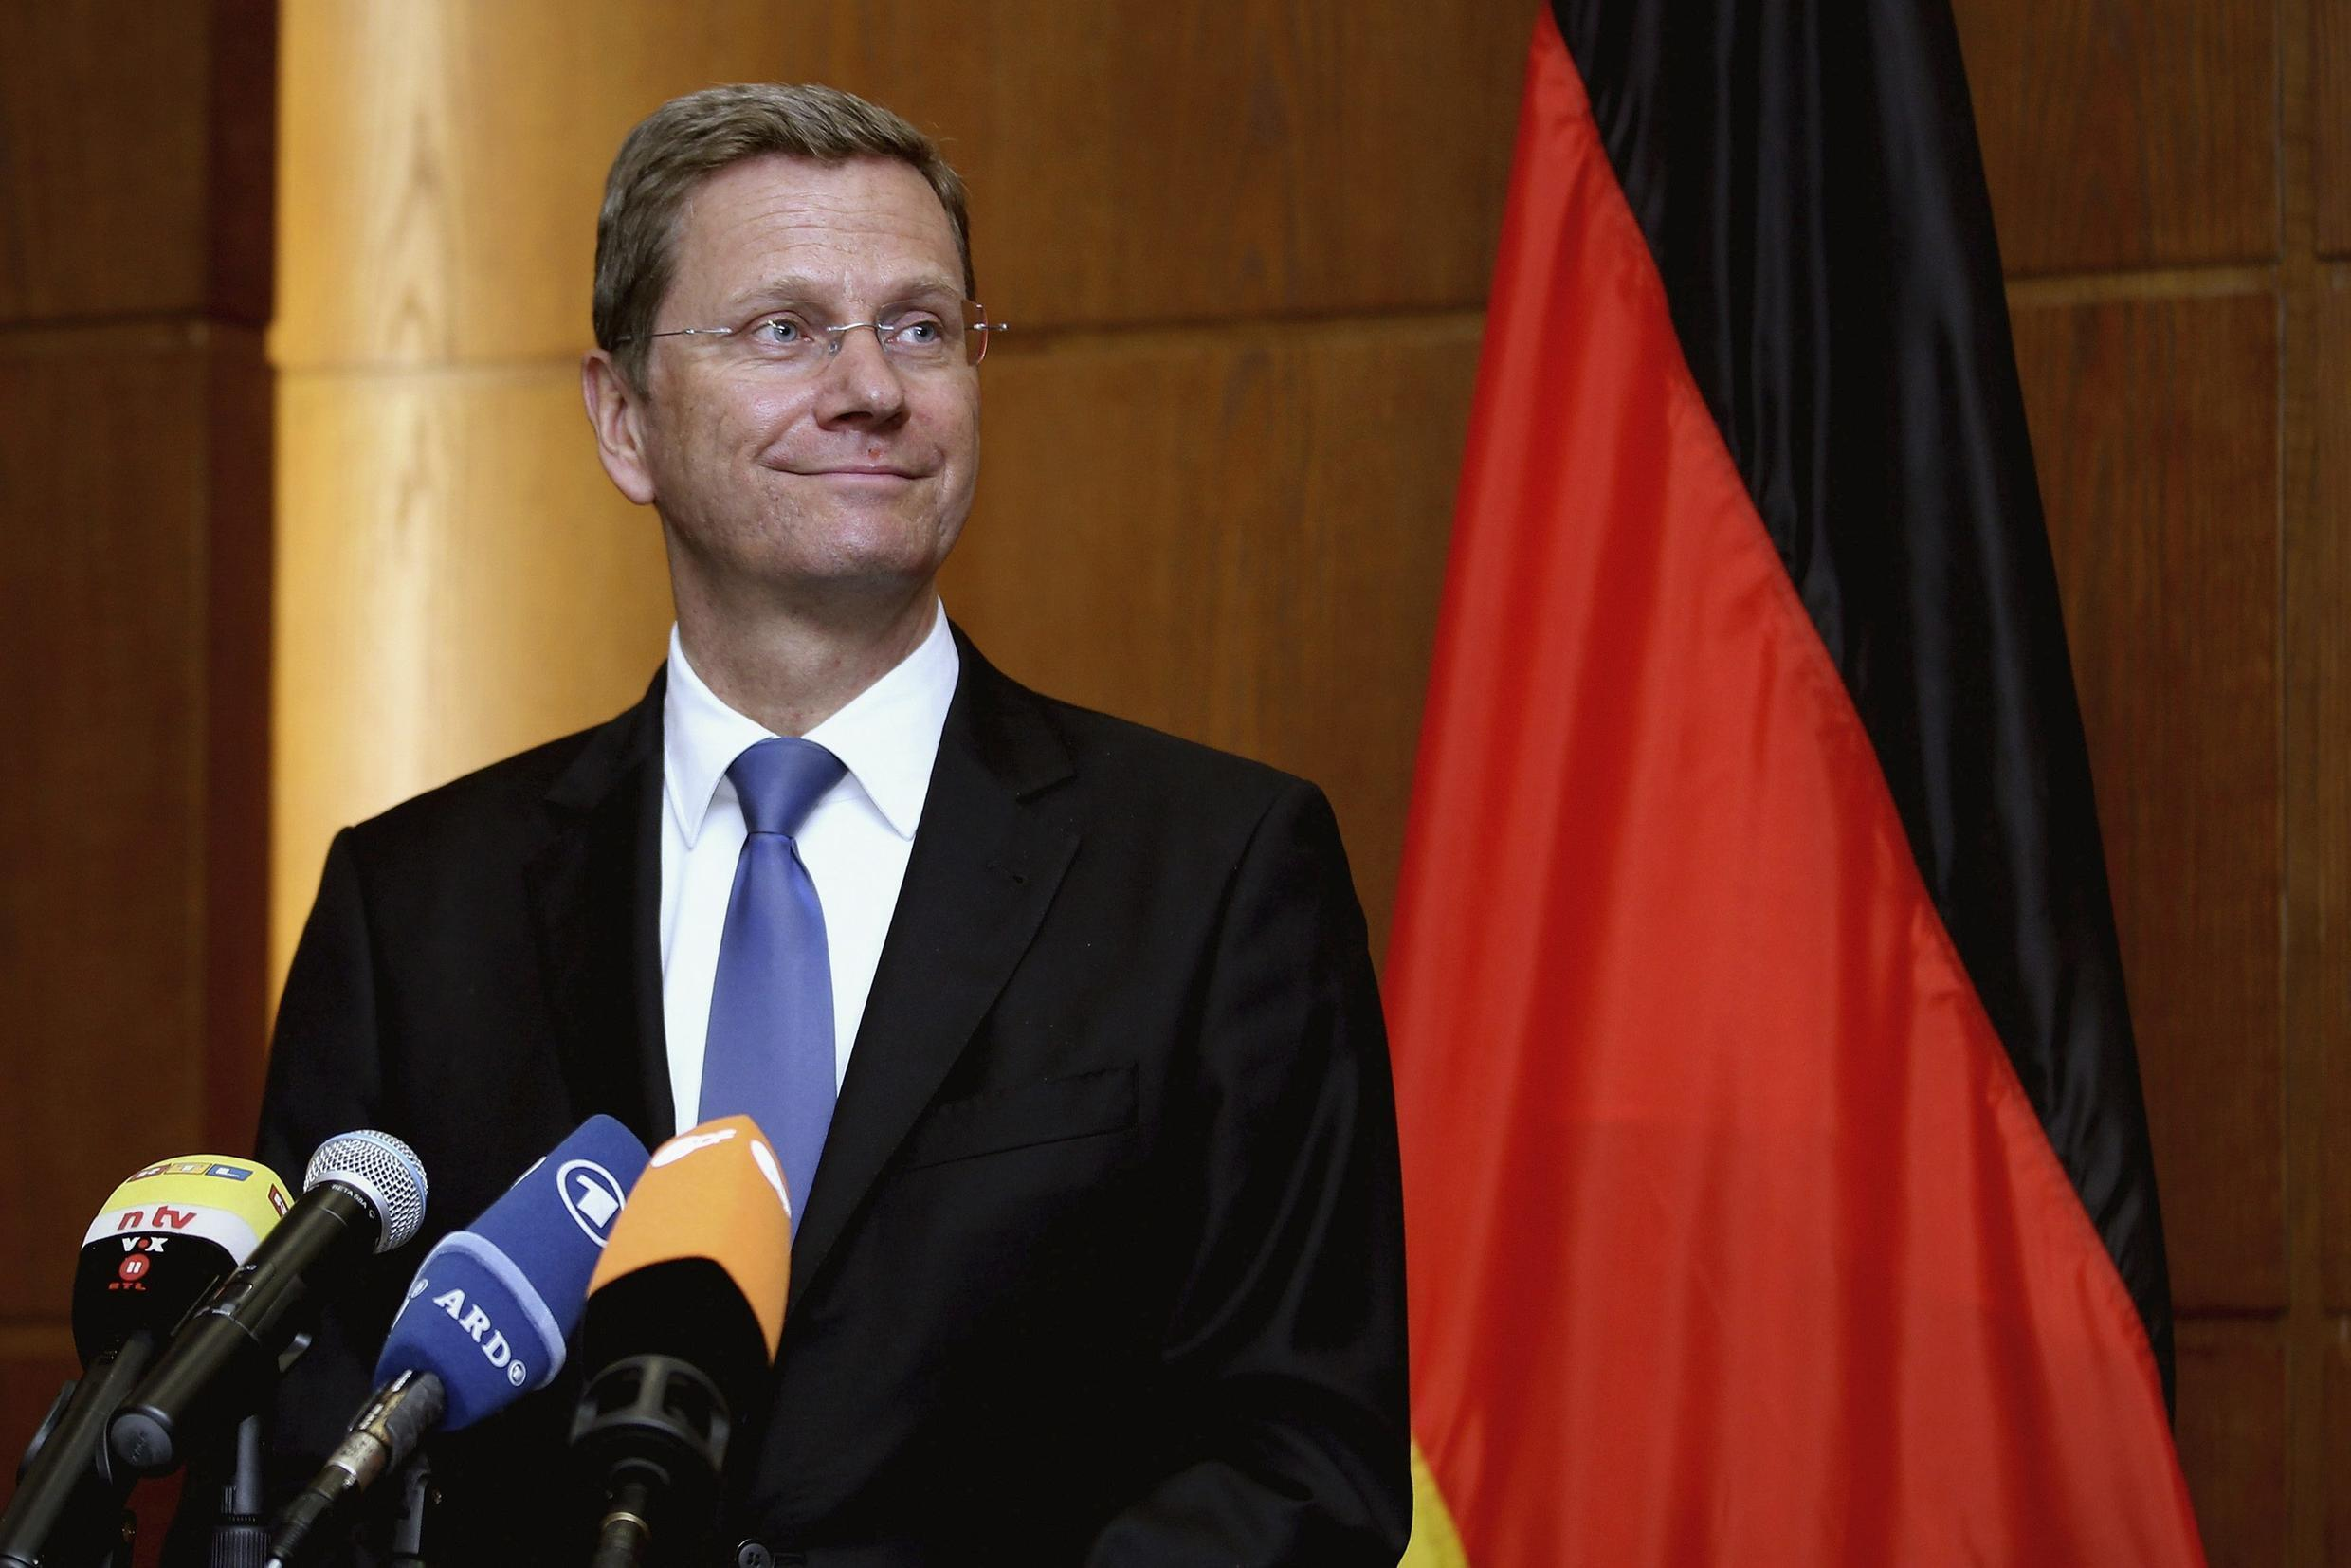 Germany's Foreign Minister Guido Westerwelle